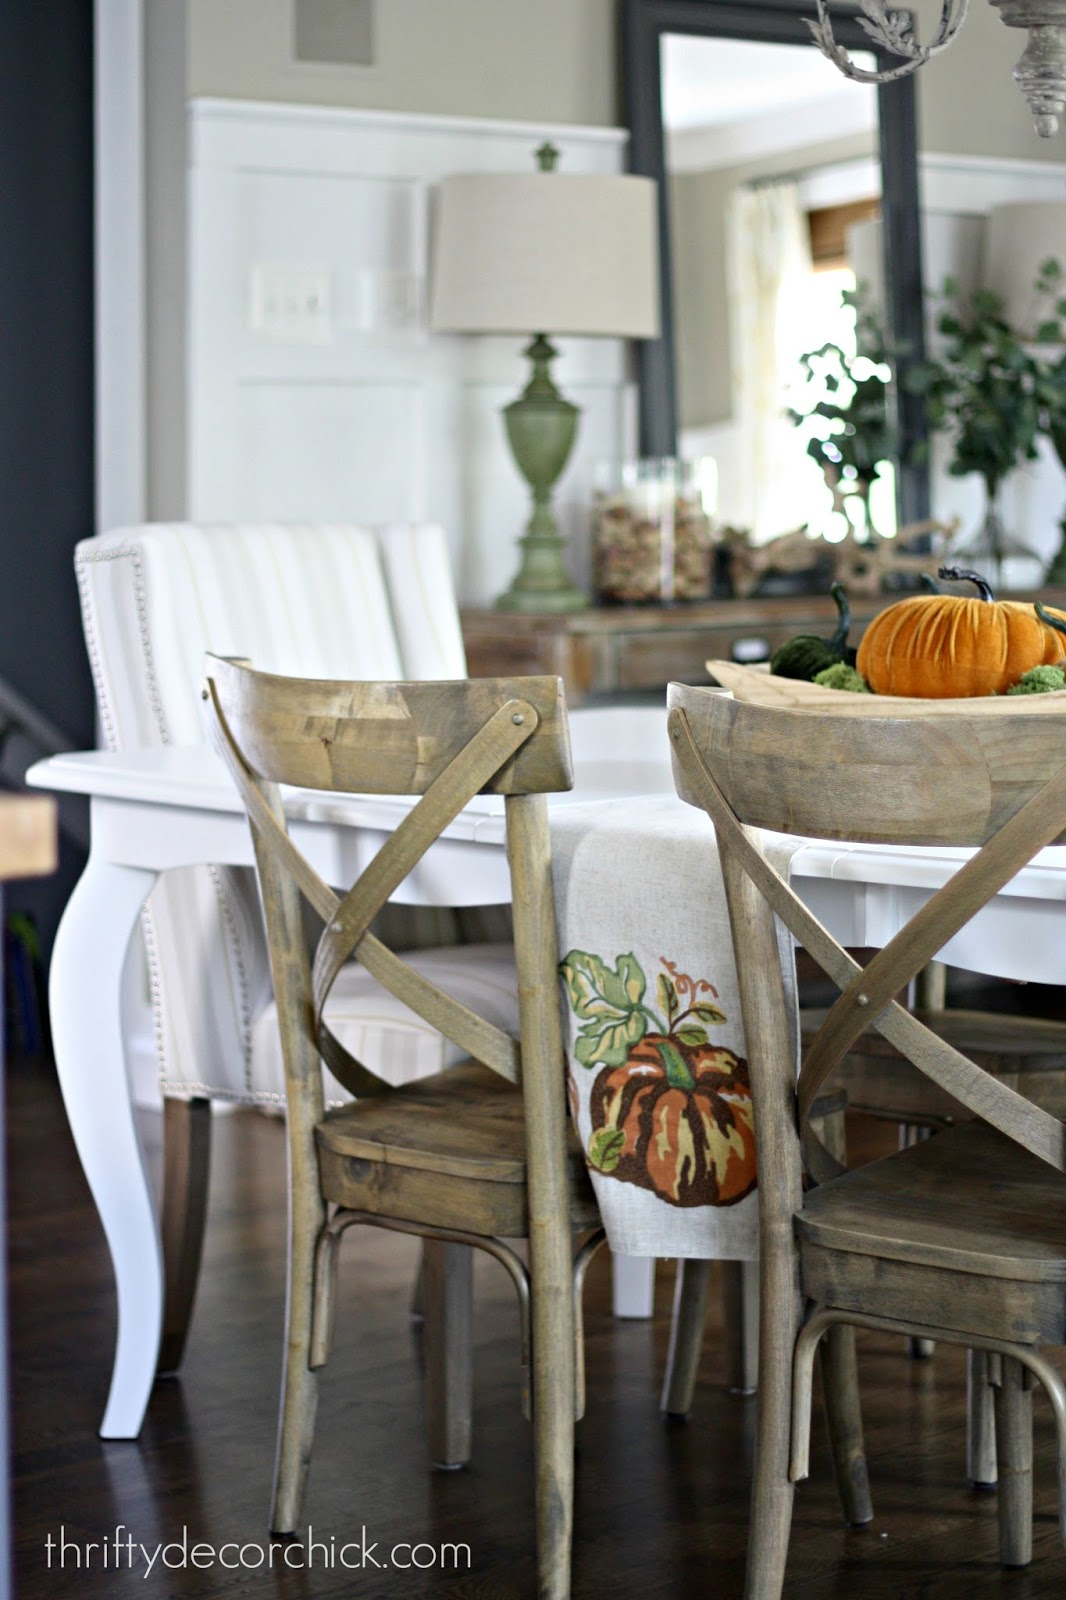 How to Paint a Kitchen Table from Thrifty Decor Chick